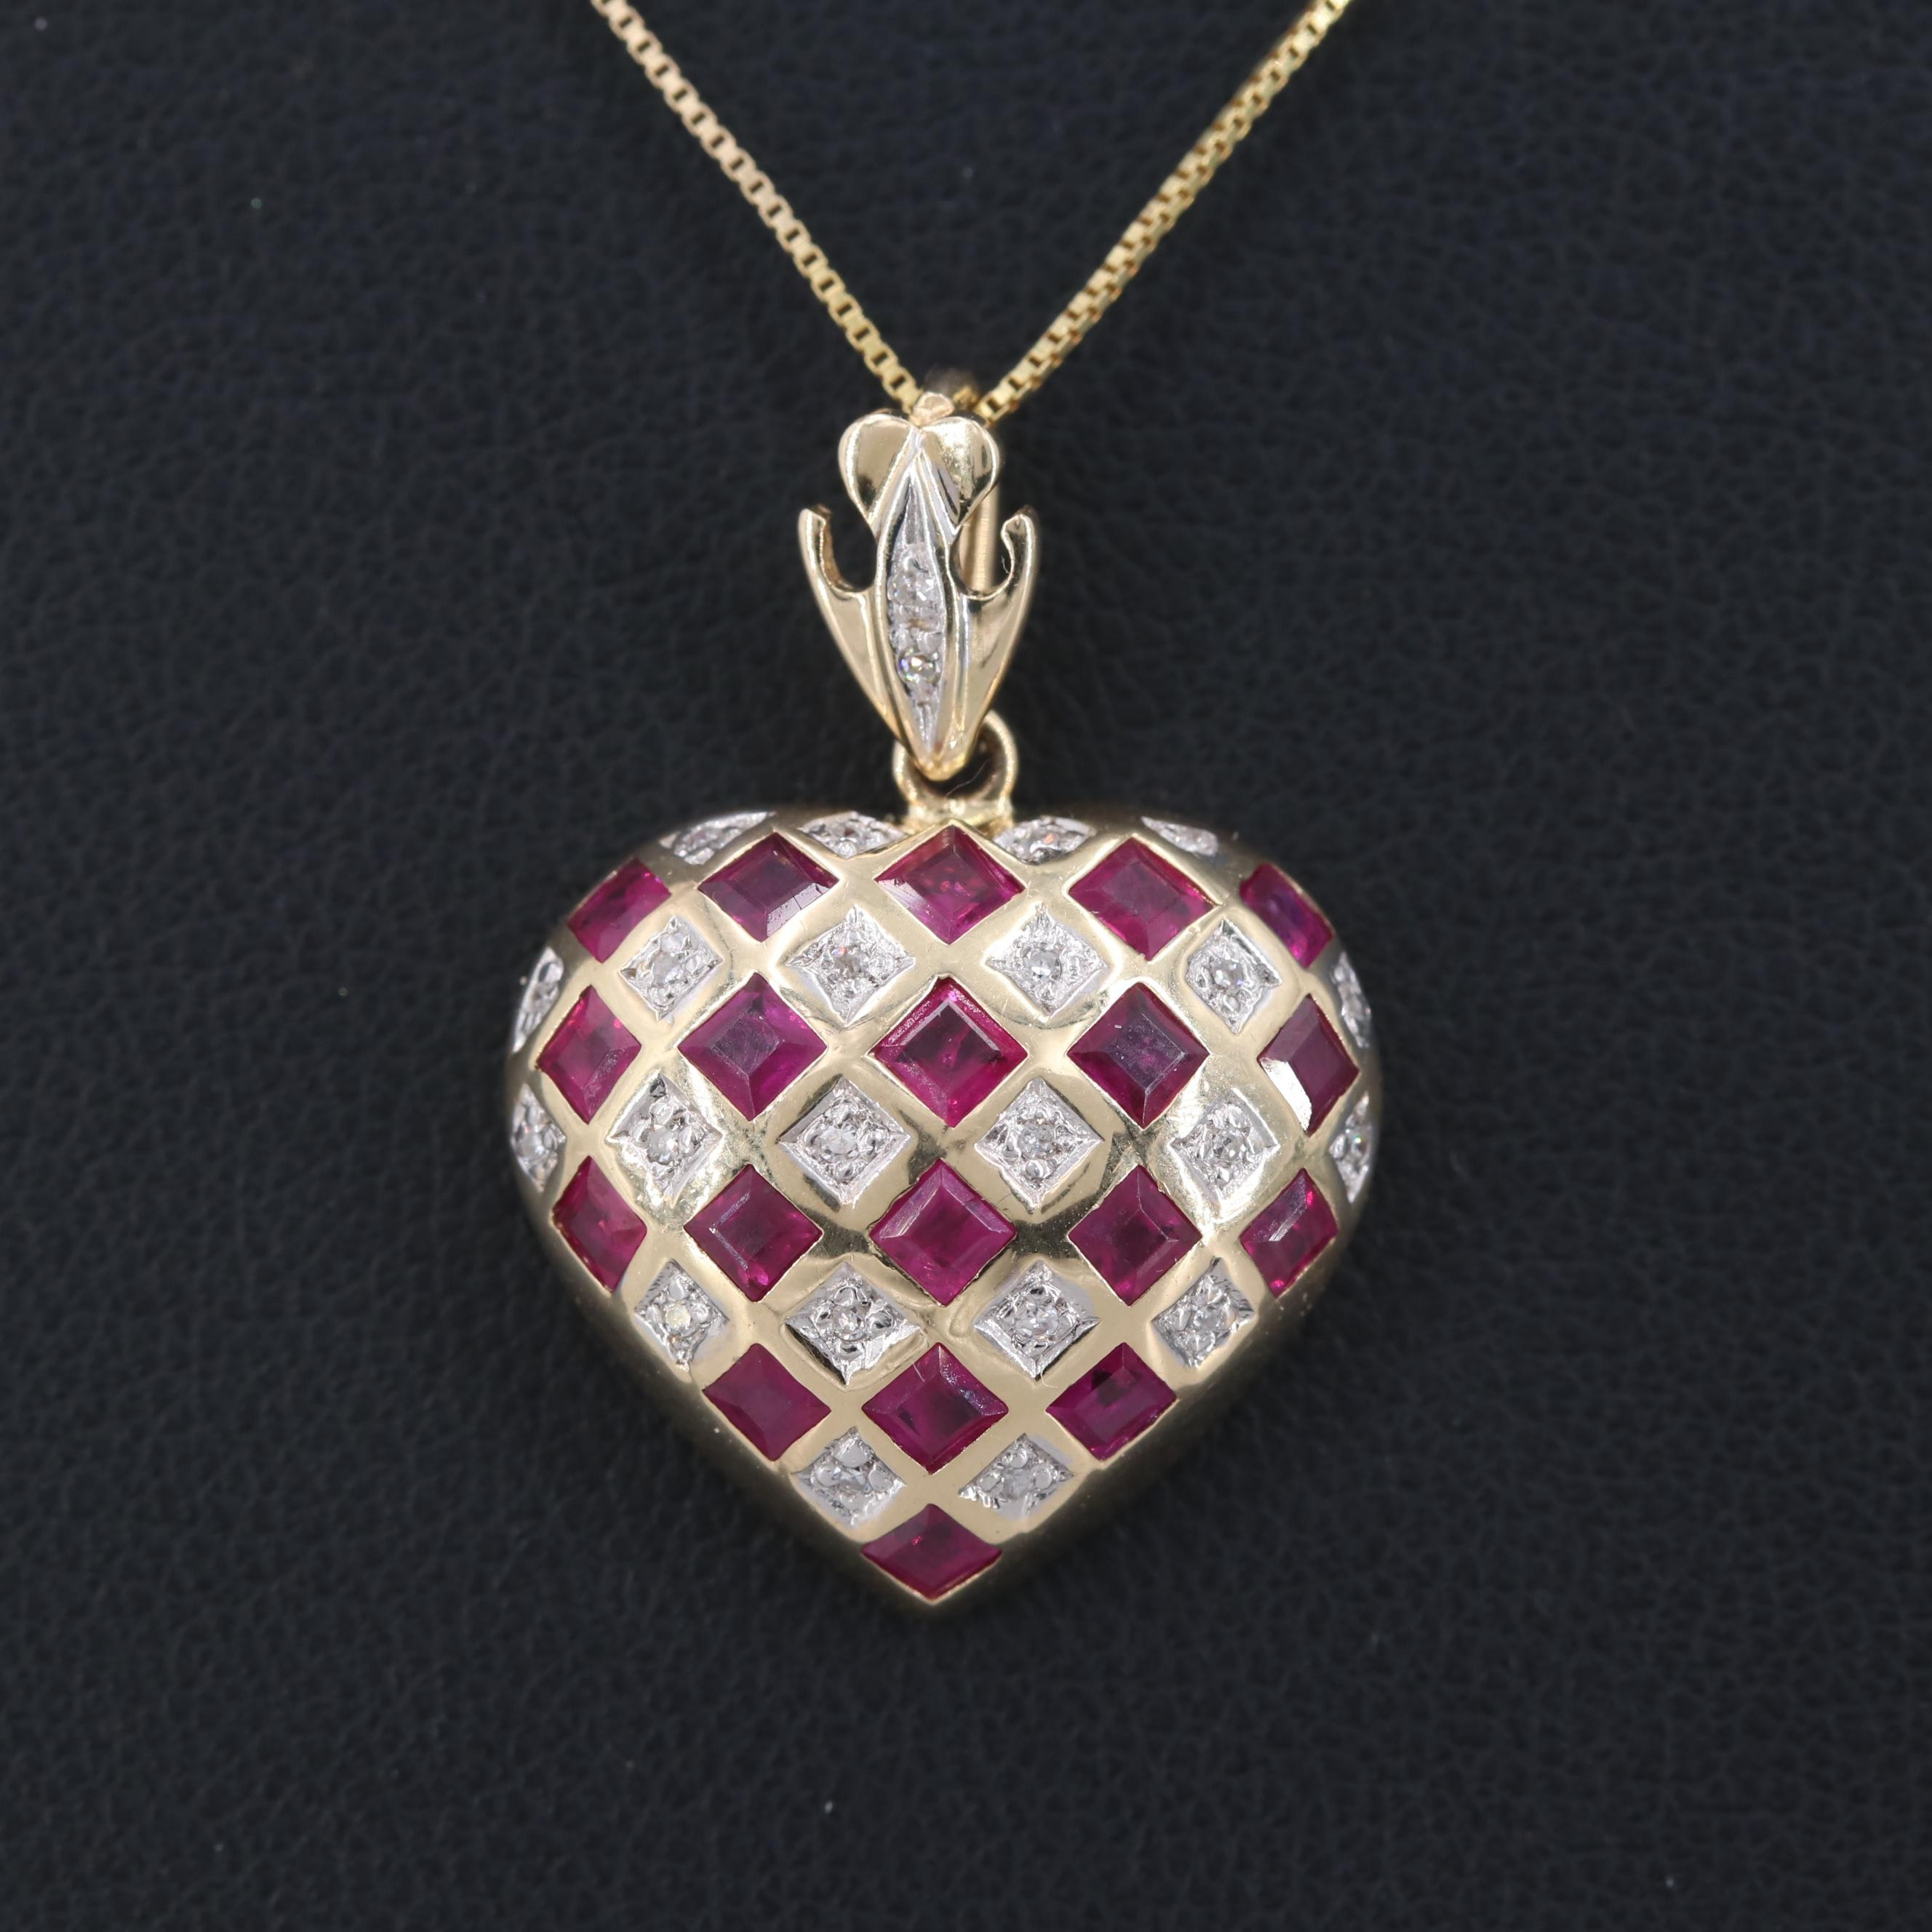 14K Yellow Gold Ruby and Diamond Heart Shaped Pendant Necklace